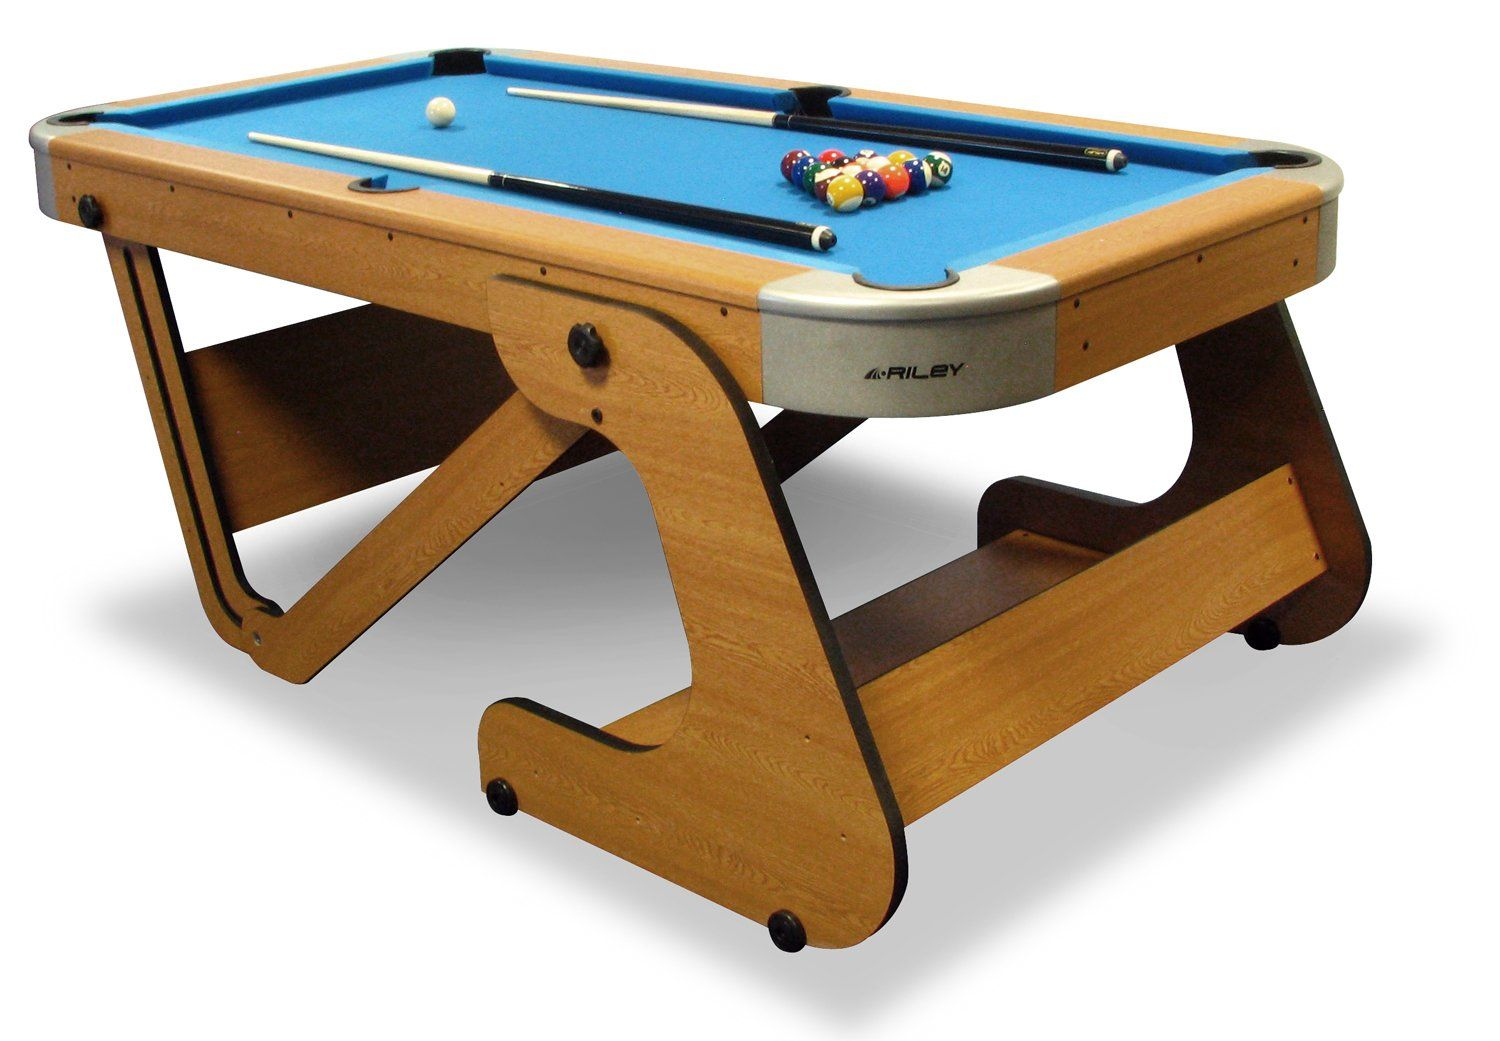 Great The Riley Folding Pool Table Is A Large Family Table With An MDF Playing  Surface, Featuring A Practical Vertical Folding Leg System For Easy Storage.